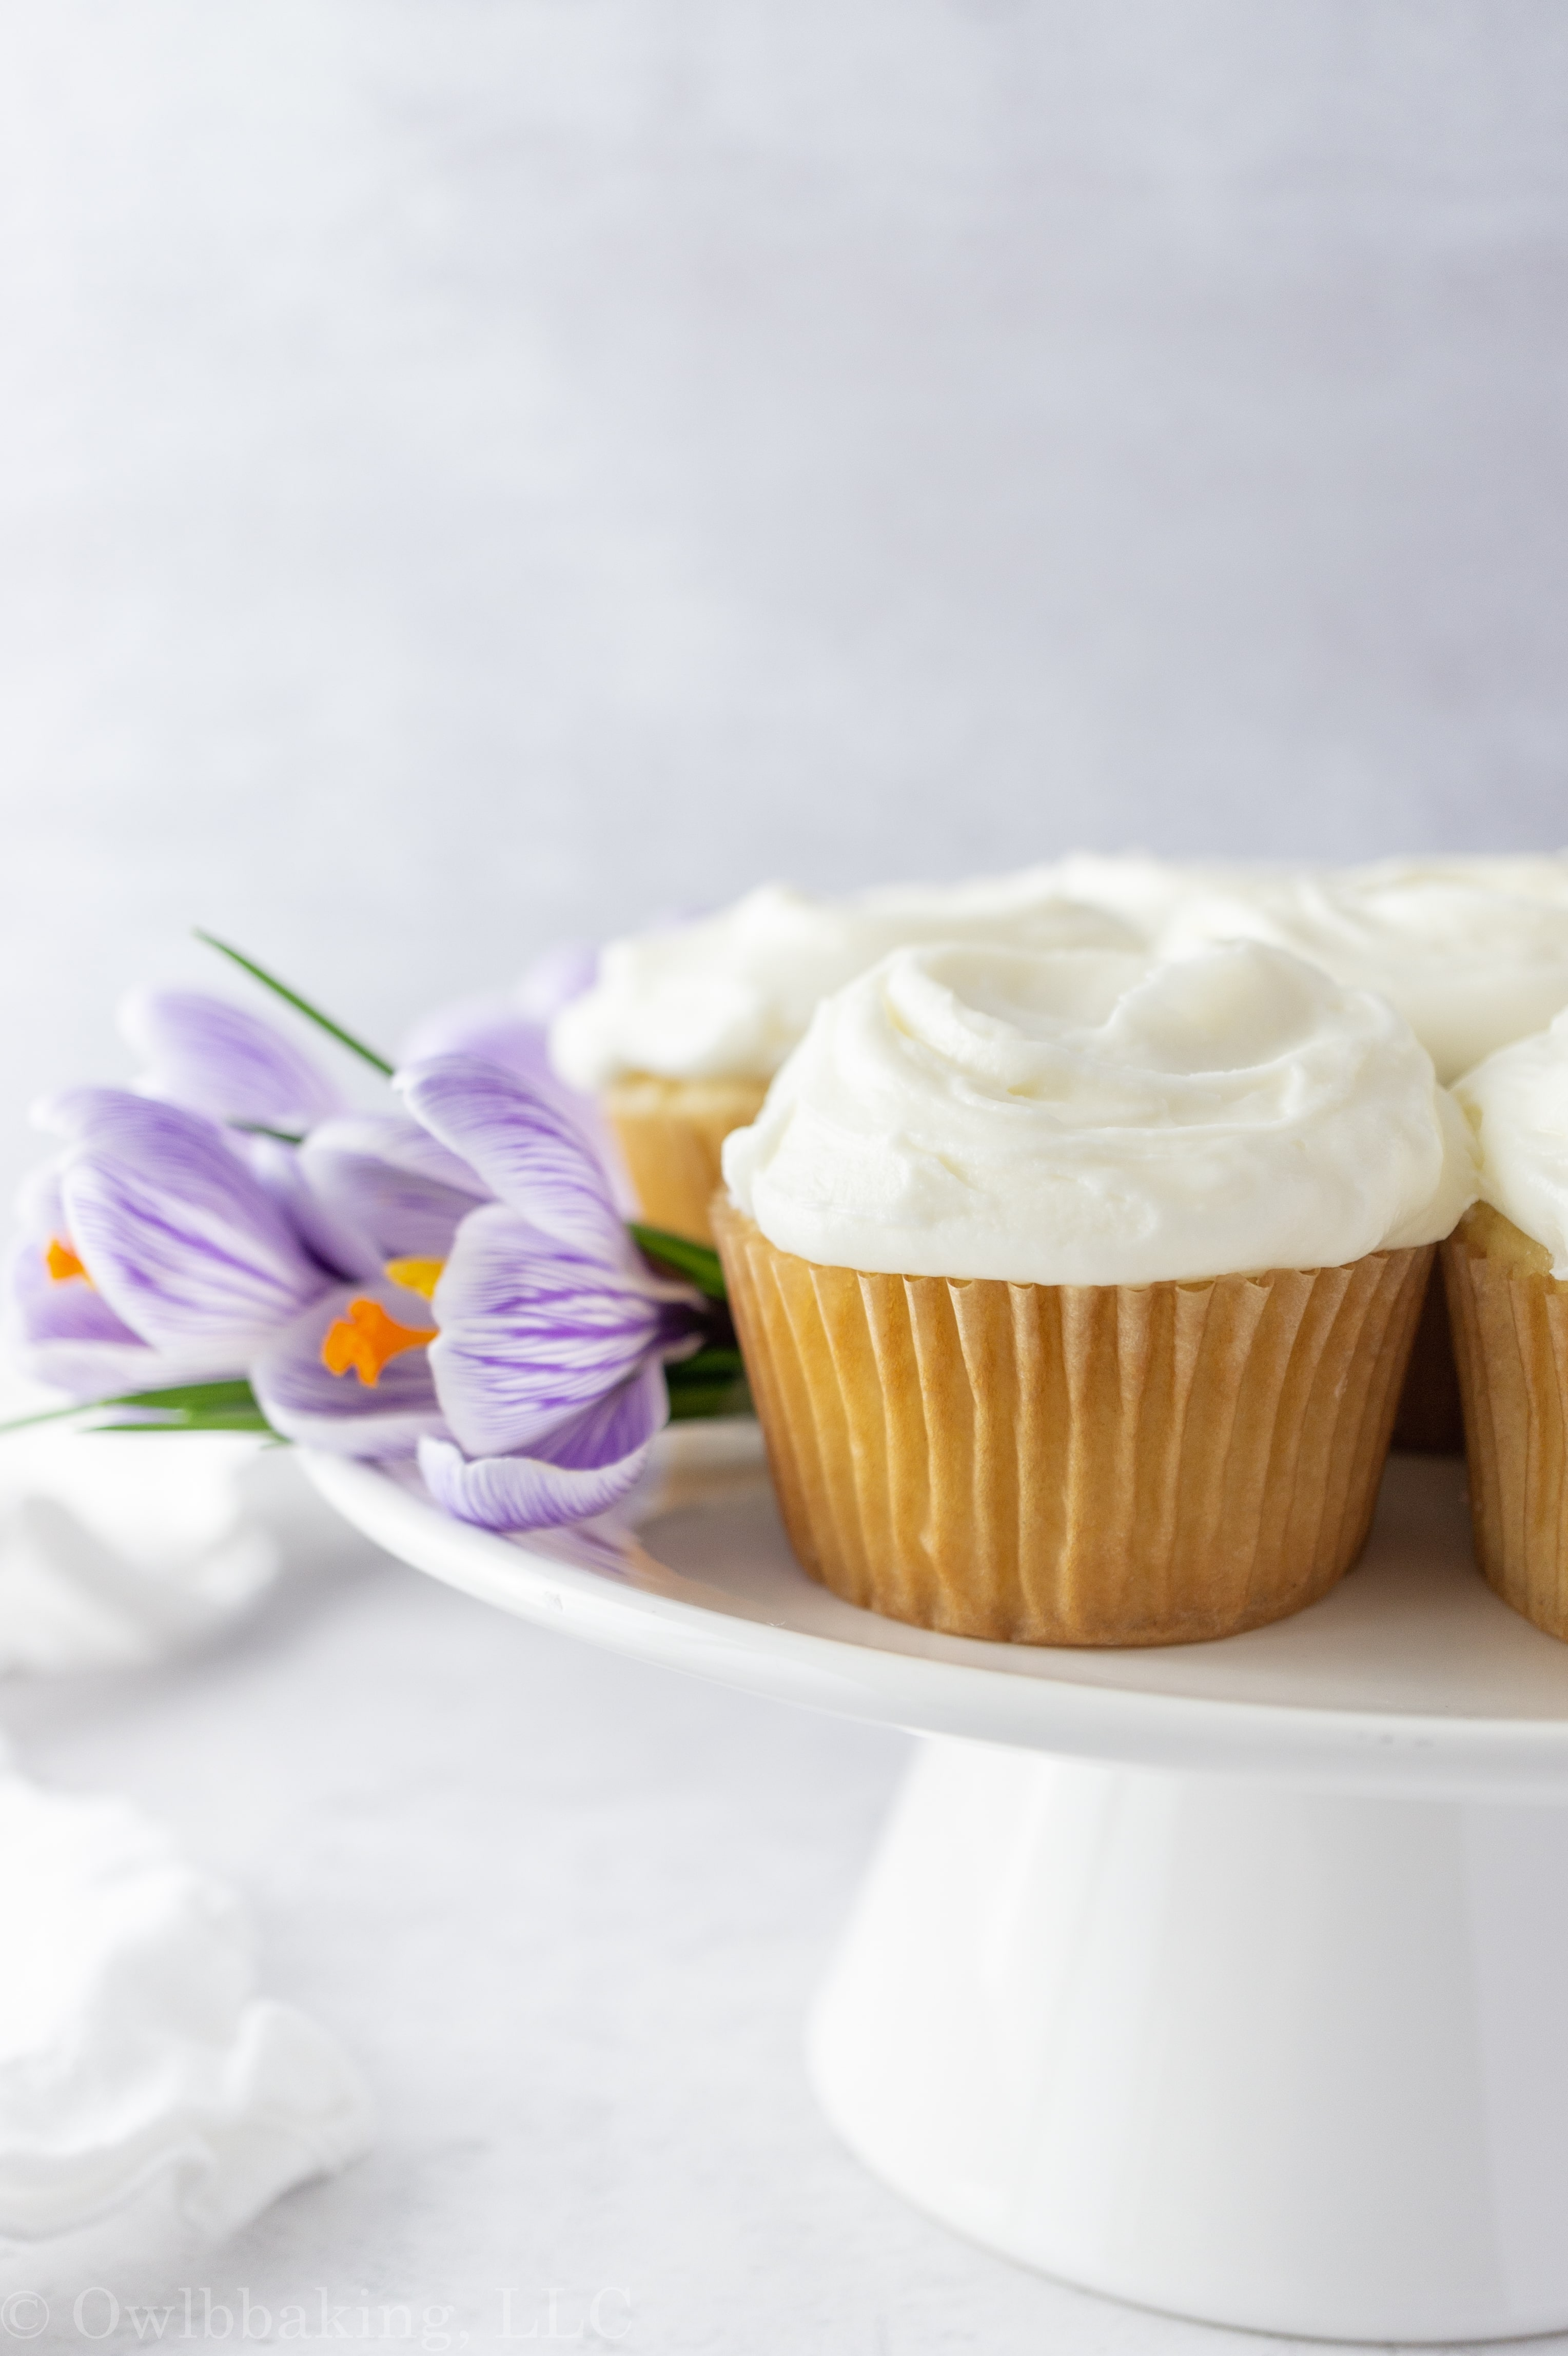 cupcake on cake stand with a purple flower